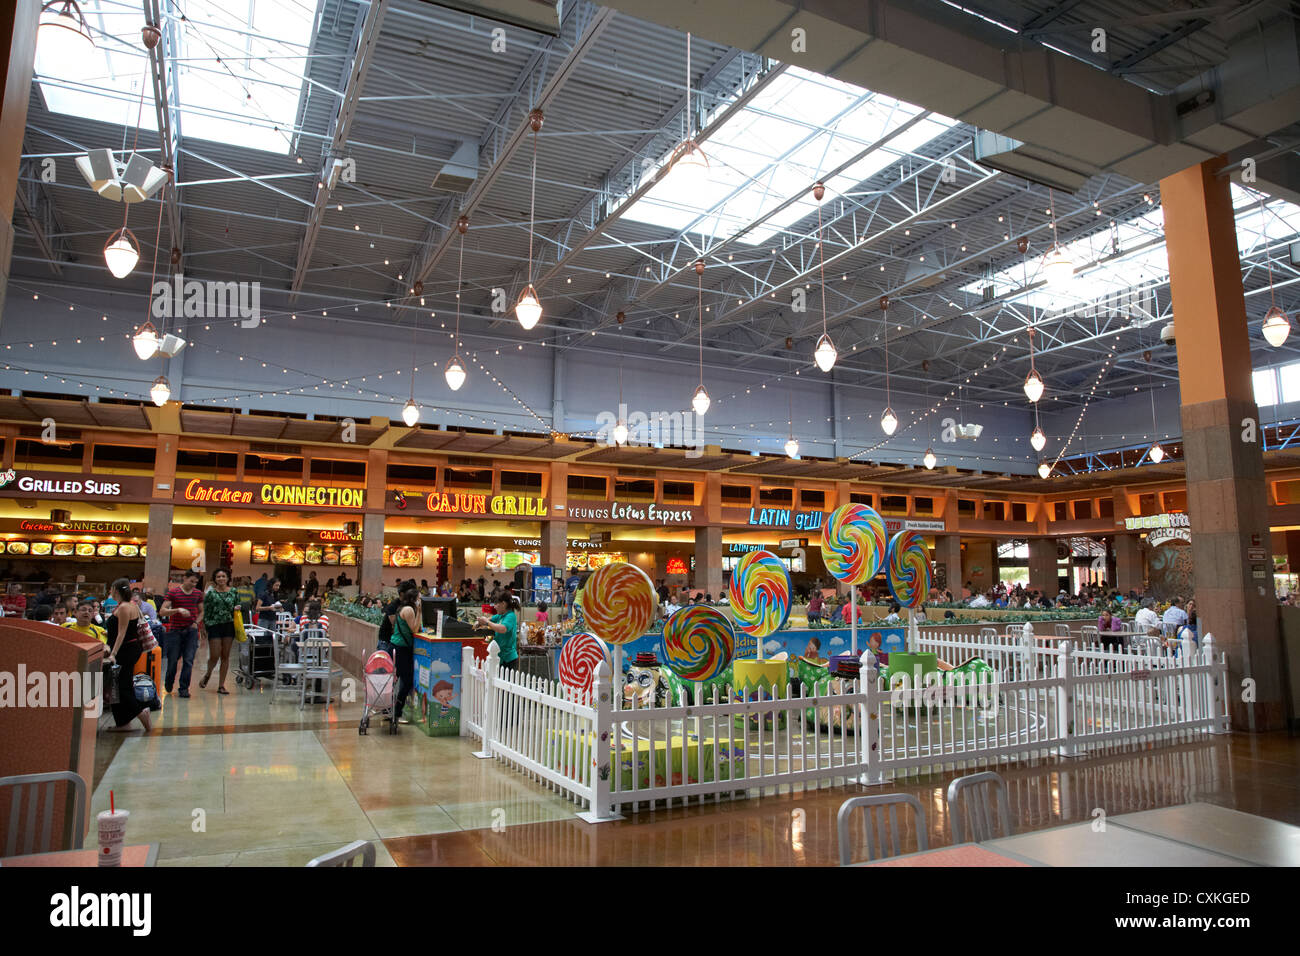 Food Court In The Dolphin Mall Shopping Centre Inmi Florida Usa Stock Image